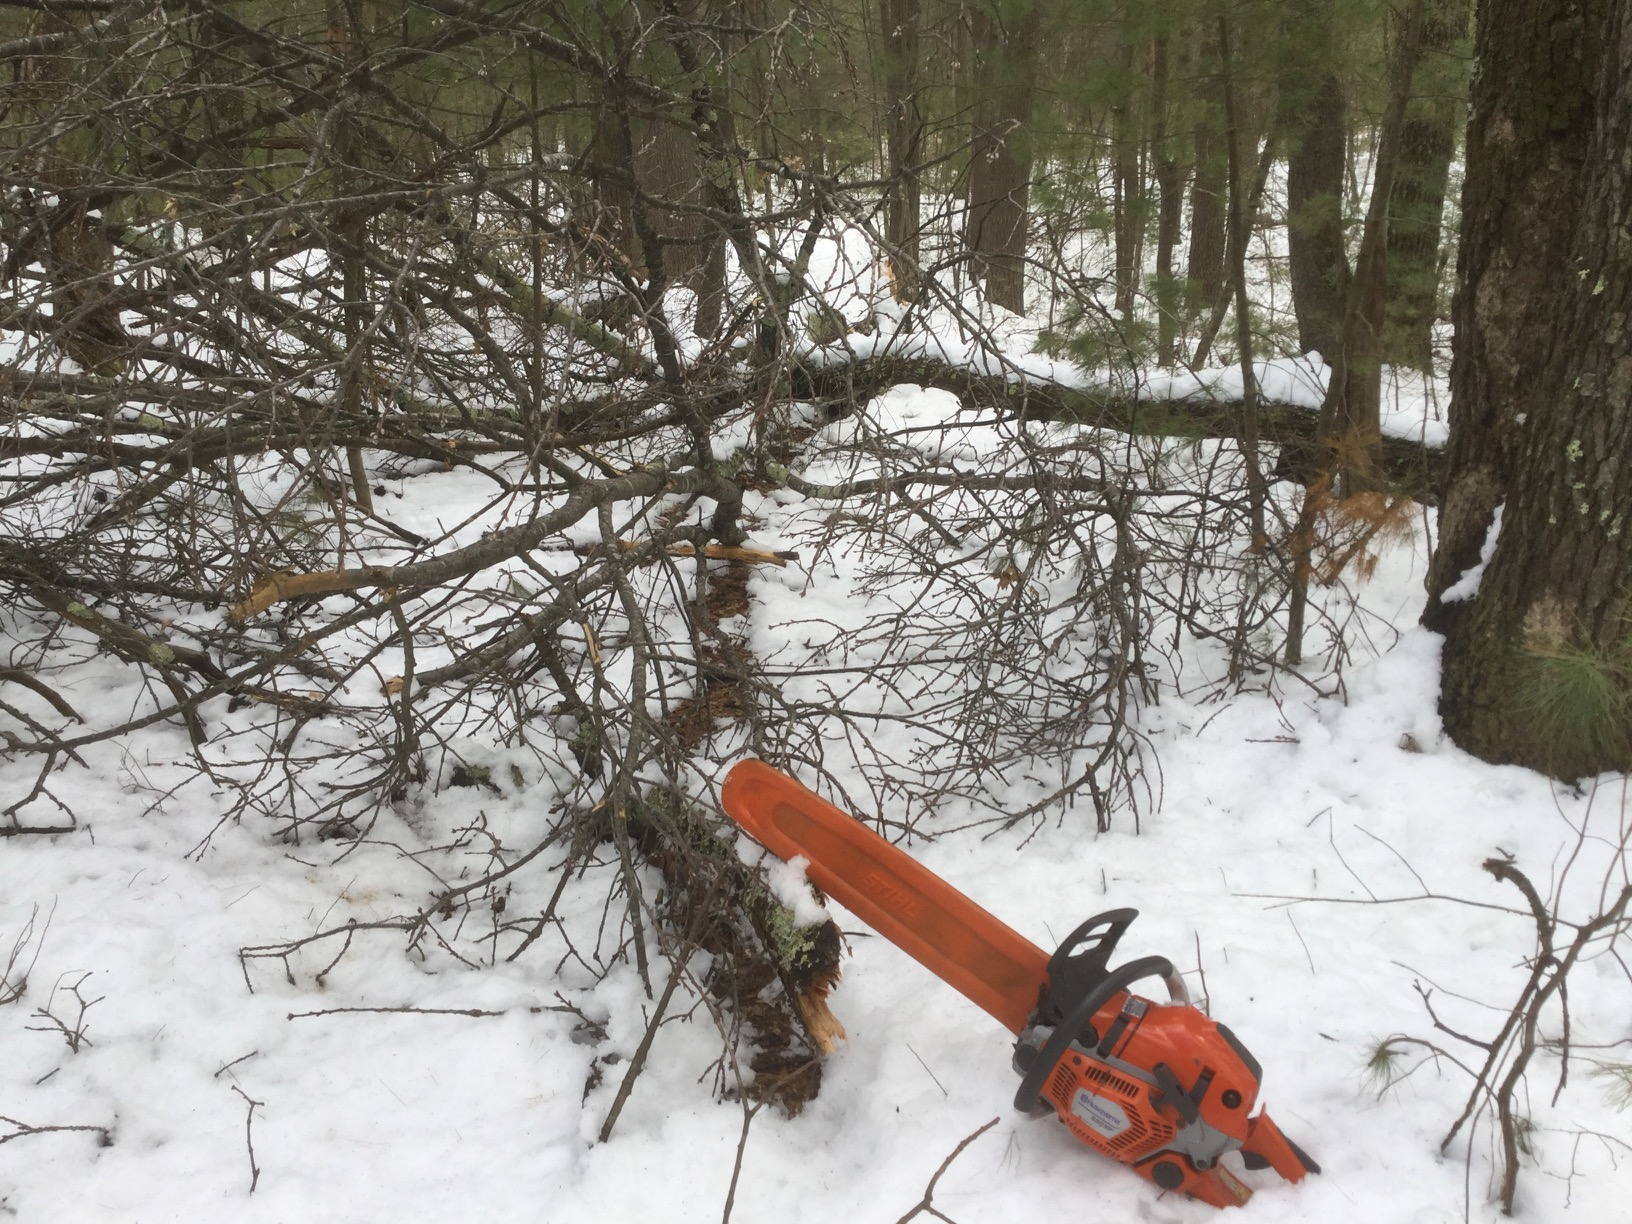 crown of fallen tree on snowy ground, with chainsaw